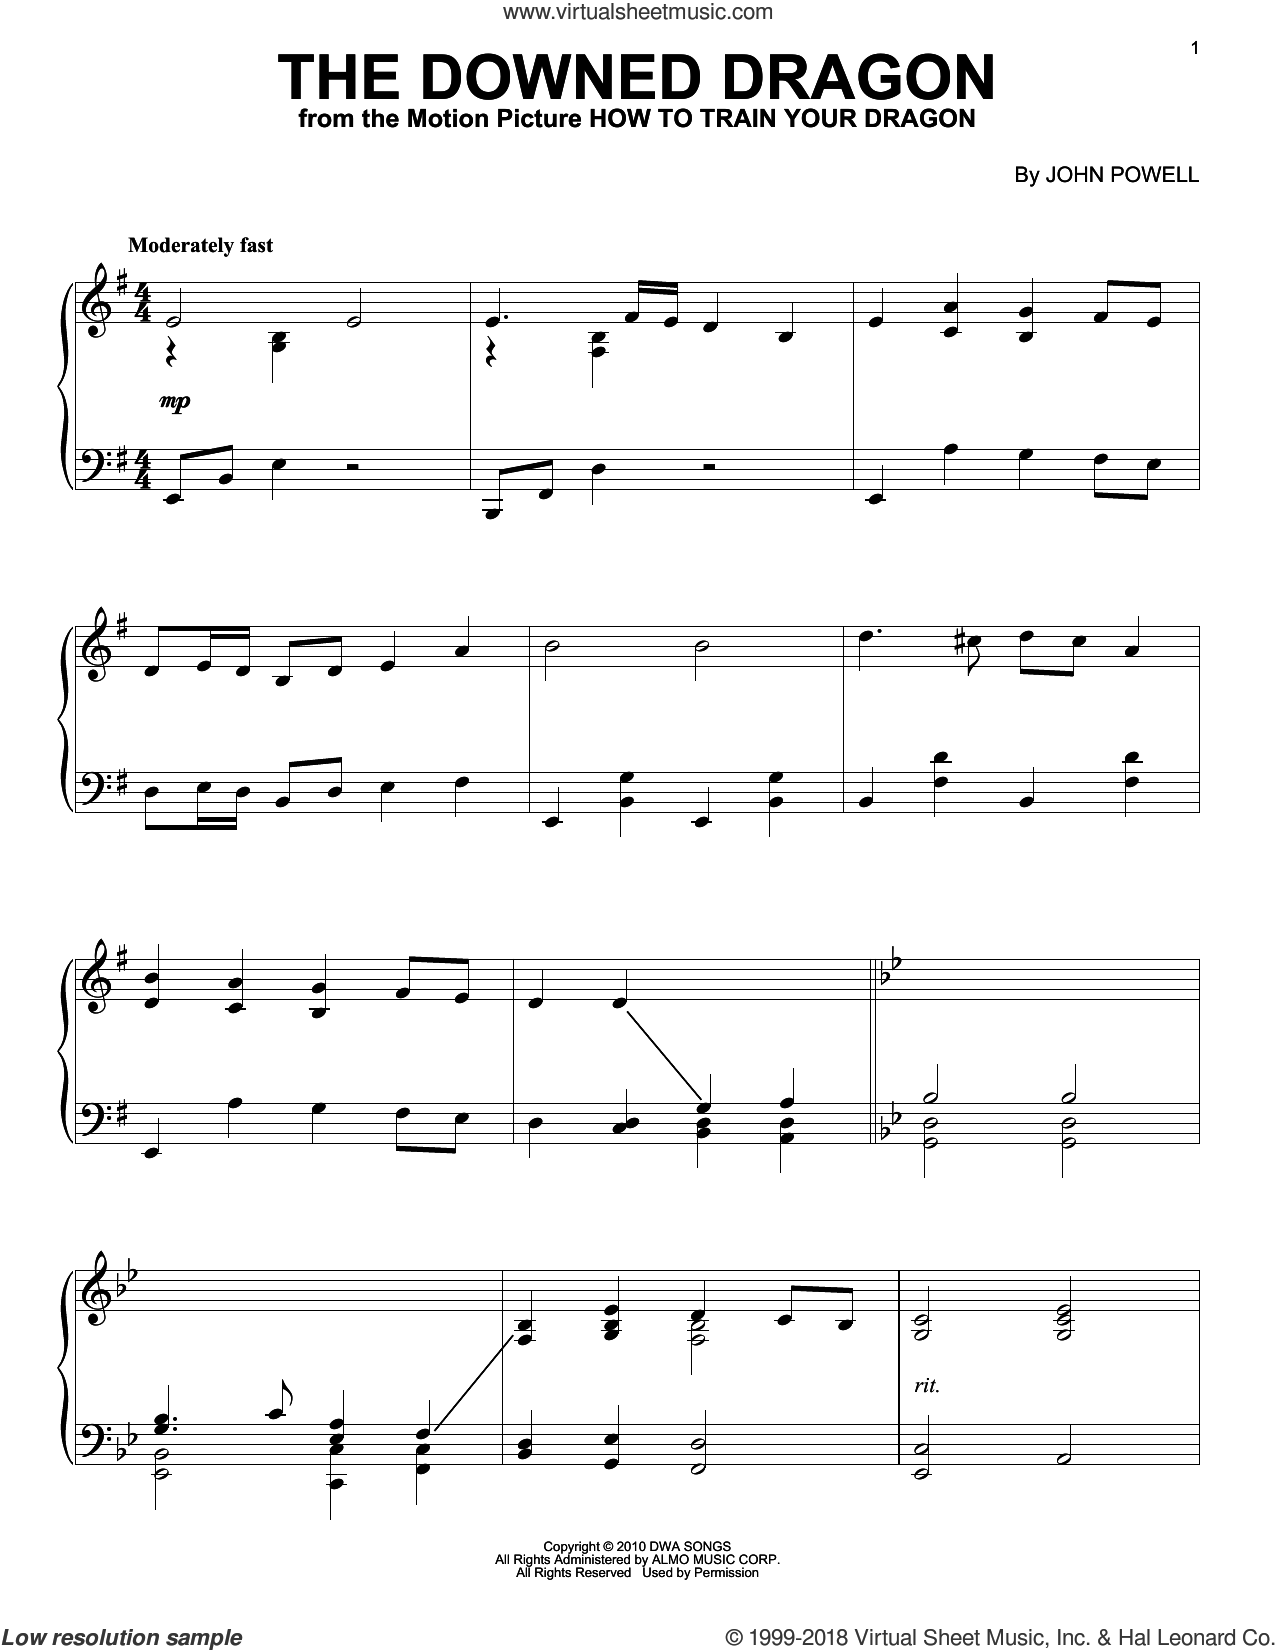 The Downed Dragon sheet music for piano solo by John Powell